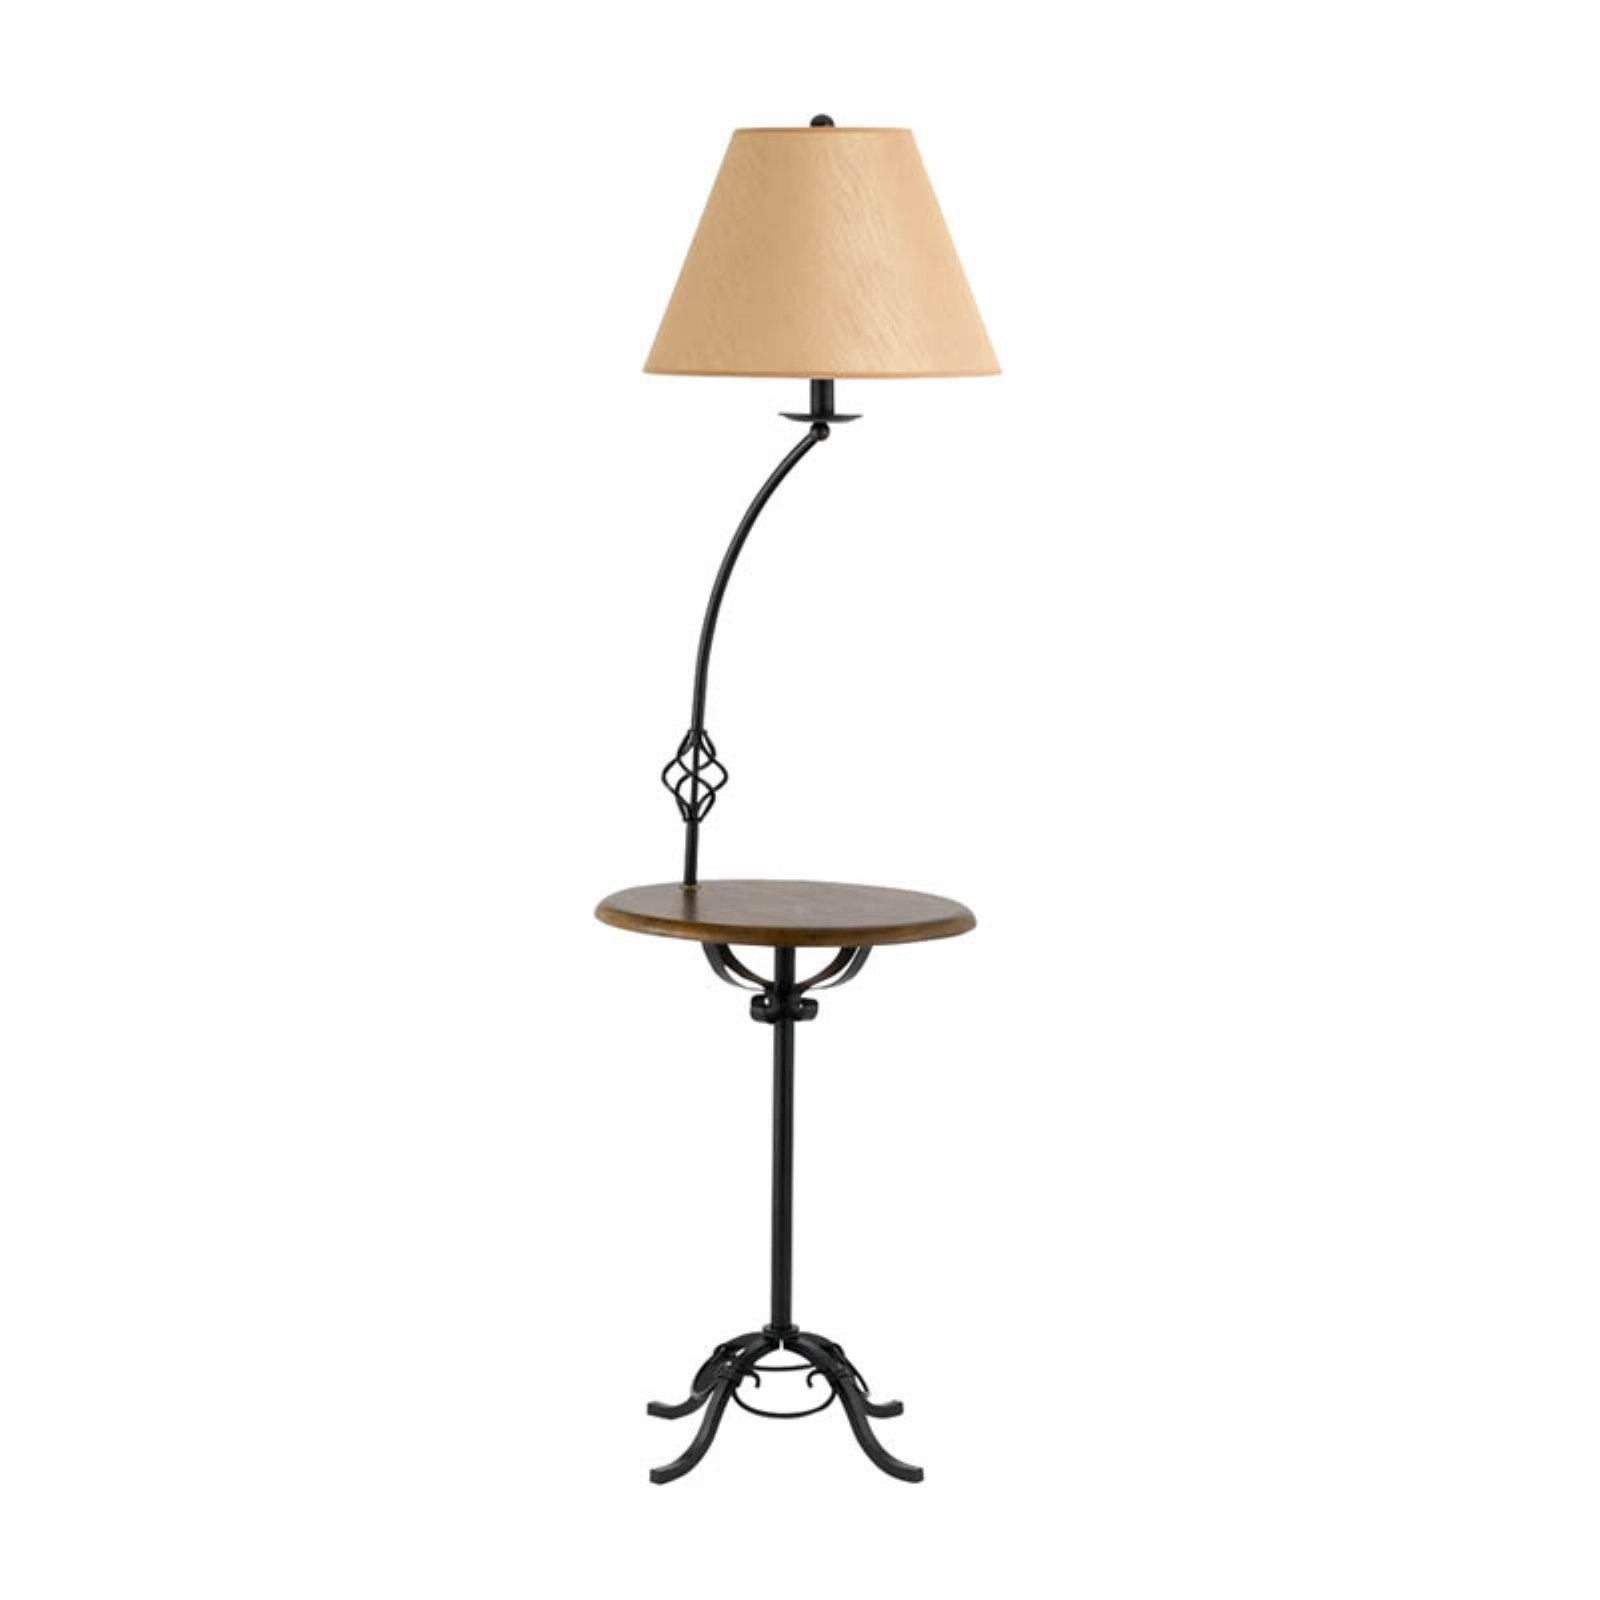 Cal Lighting BO-2095FL Wrought Iron Floor Lamp with Wood Tray Table by CAL Lighting